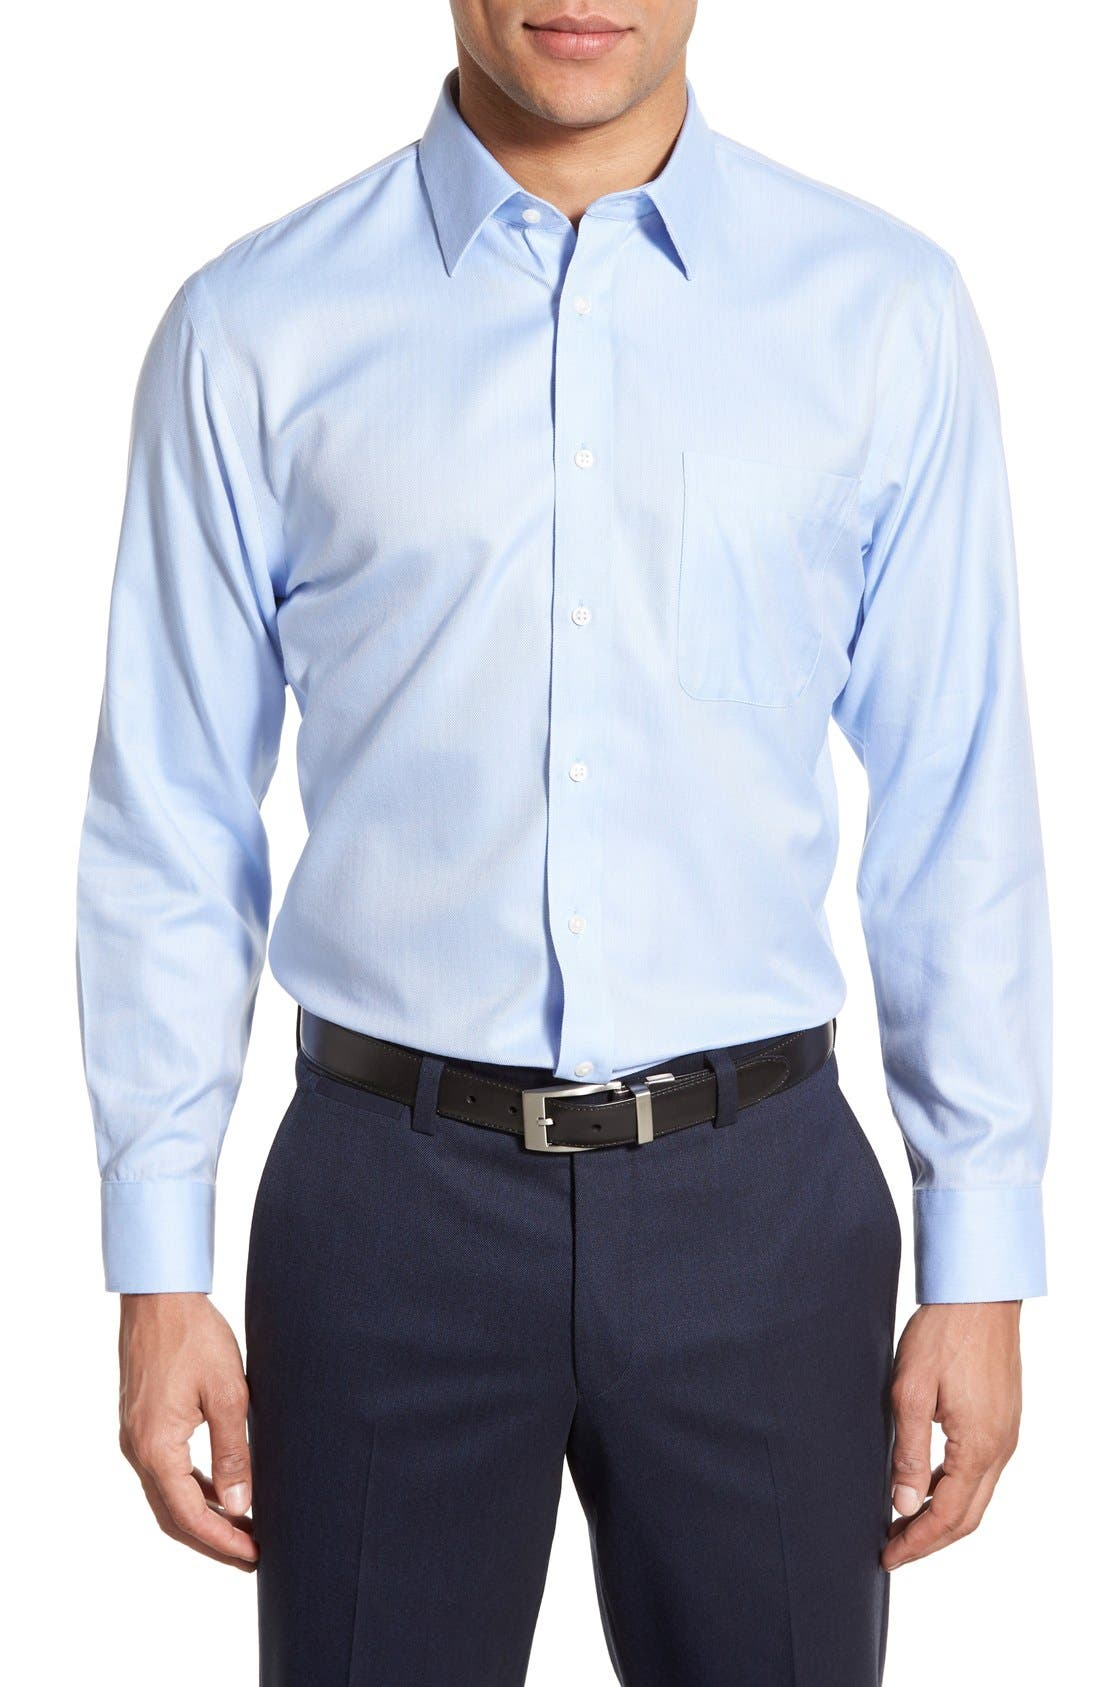 Smartcare<sup>™</sup> Trim Fit Herringbone Dress Shirt,                             Main thumbnail 1, color,                             Blue